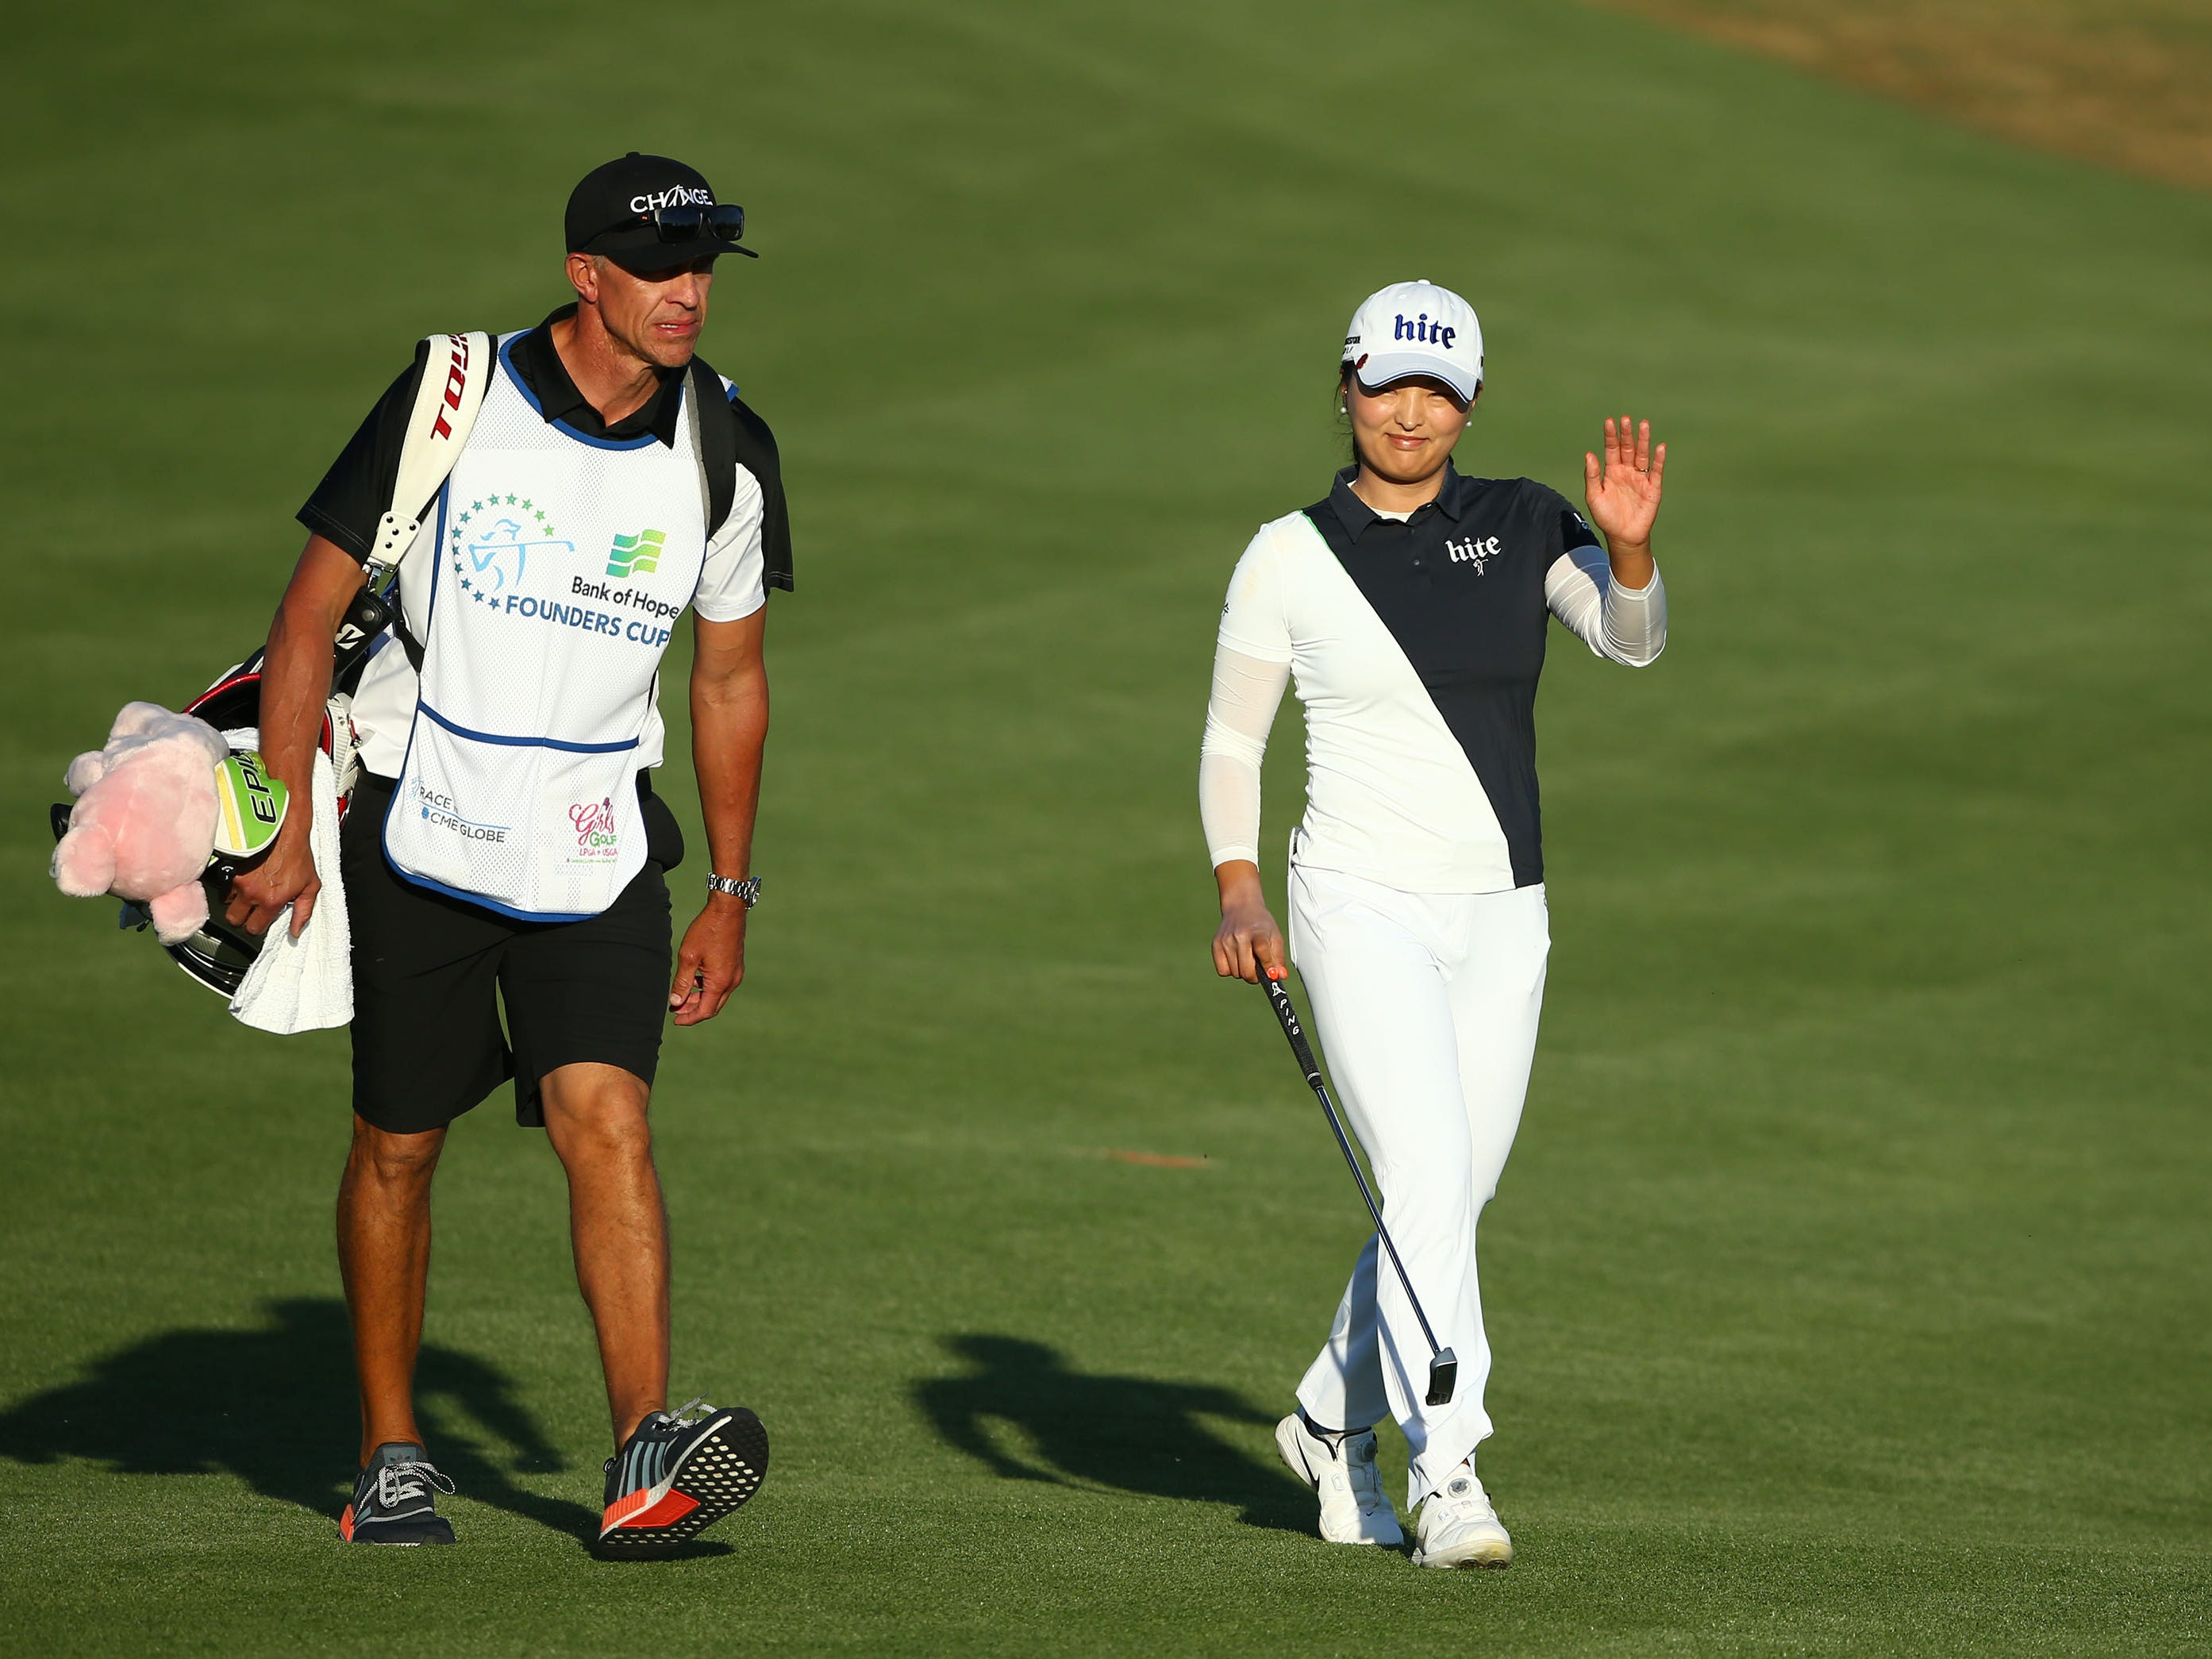 Jin Young Ko of South Korea waves to the crowd as she walks to the 18th green during final round action at the Bank of Hope Founders Cup on Mar. 24, 2019 at Wildfire Golf Club at JW Marriott in Phoenix, Ariz.